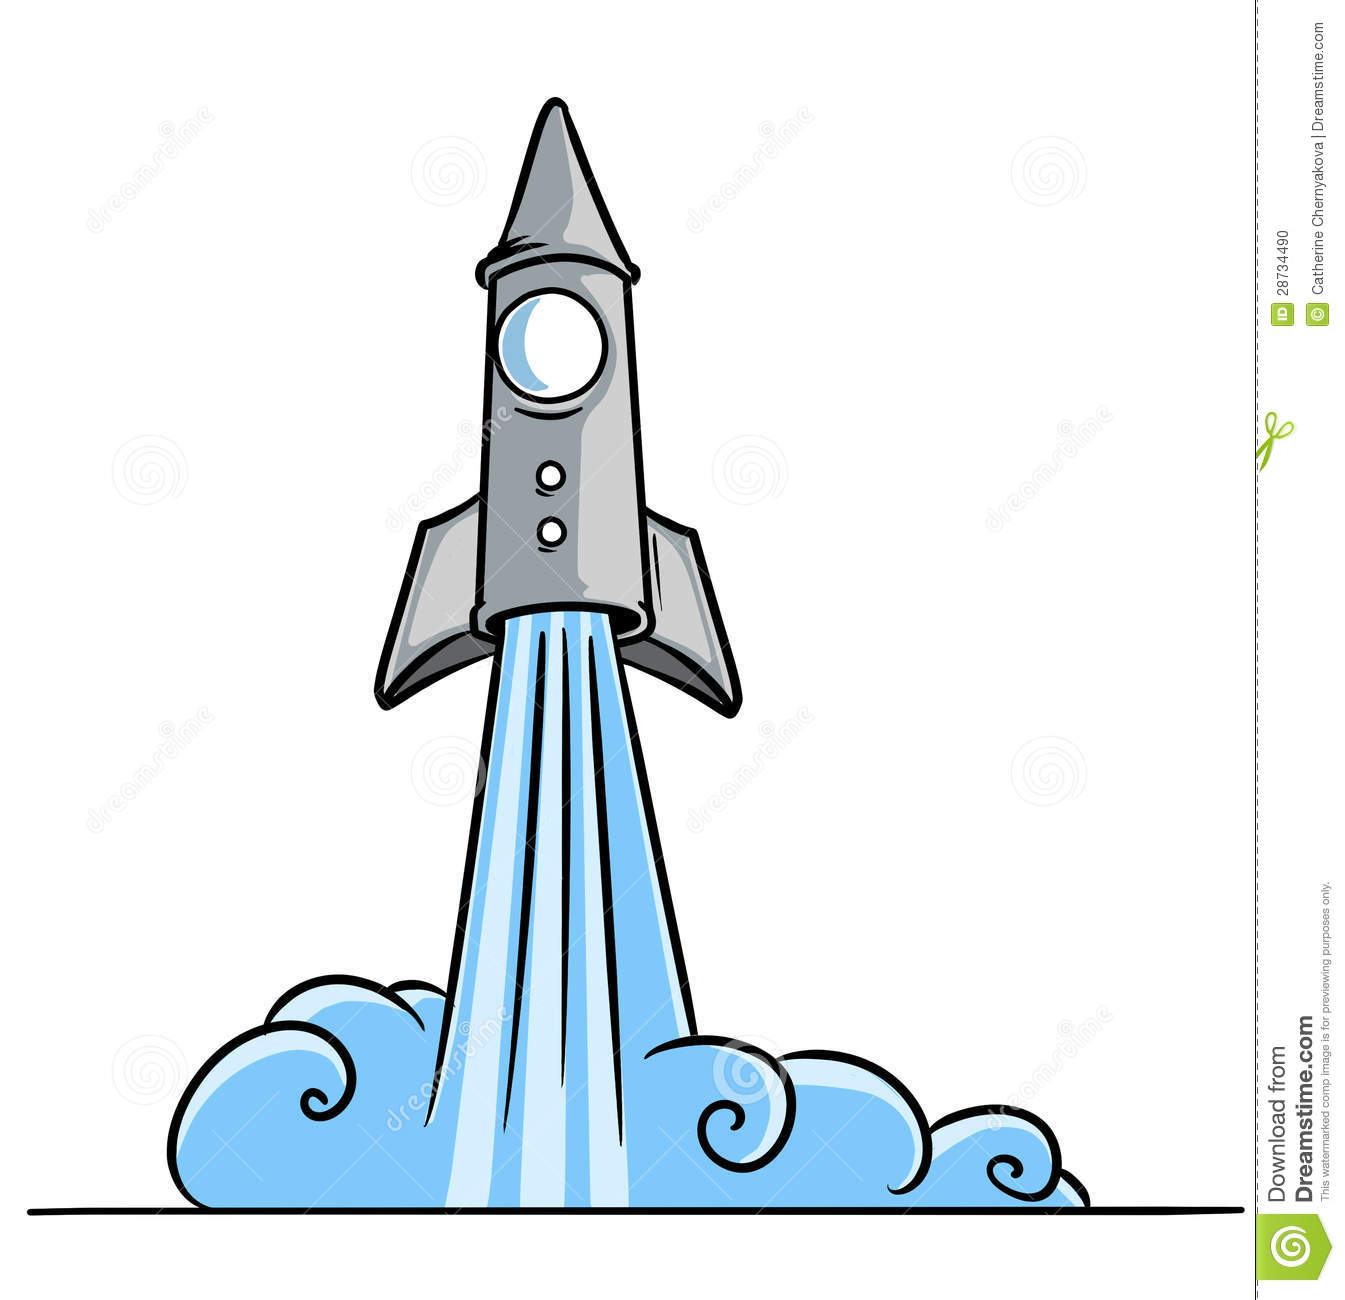 Bible blast off clipart graphic freeuse download Collection of Blast clipart | Free download best Blast clipart on ... graphic freeuse download